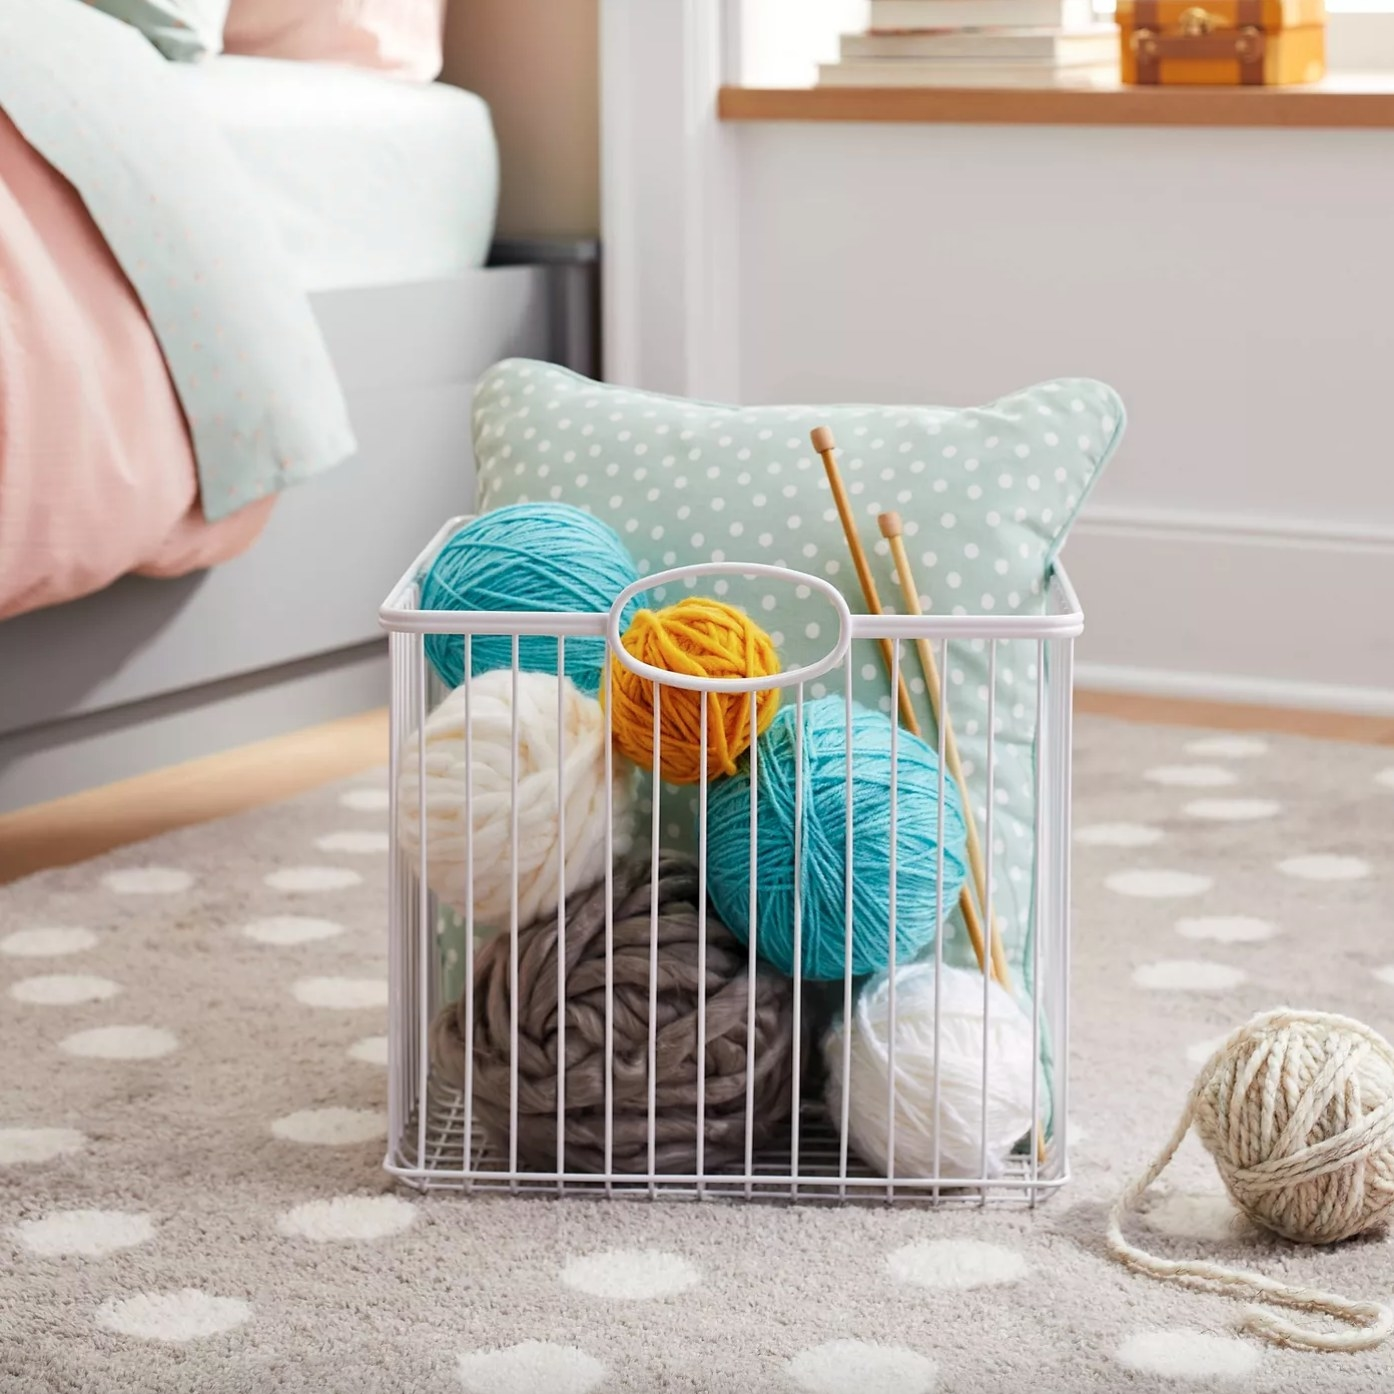 The stackable storage wire bin in white holding yarn, a pillow, and knitting needles